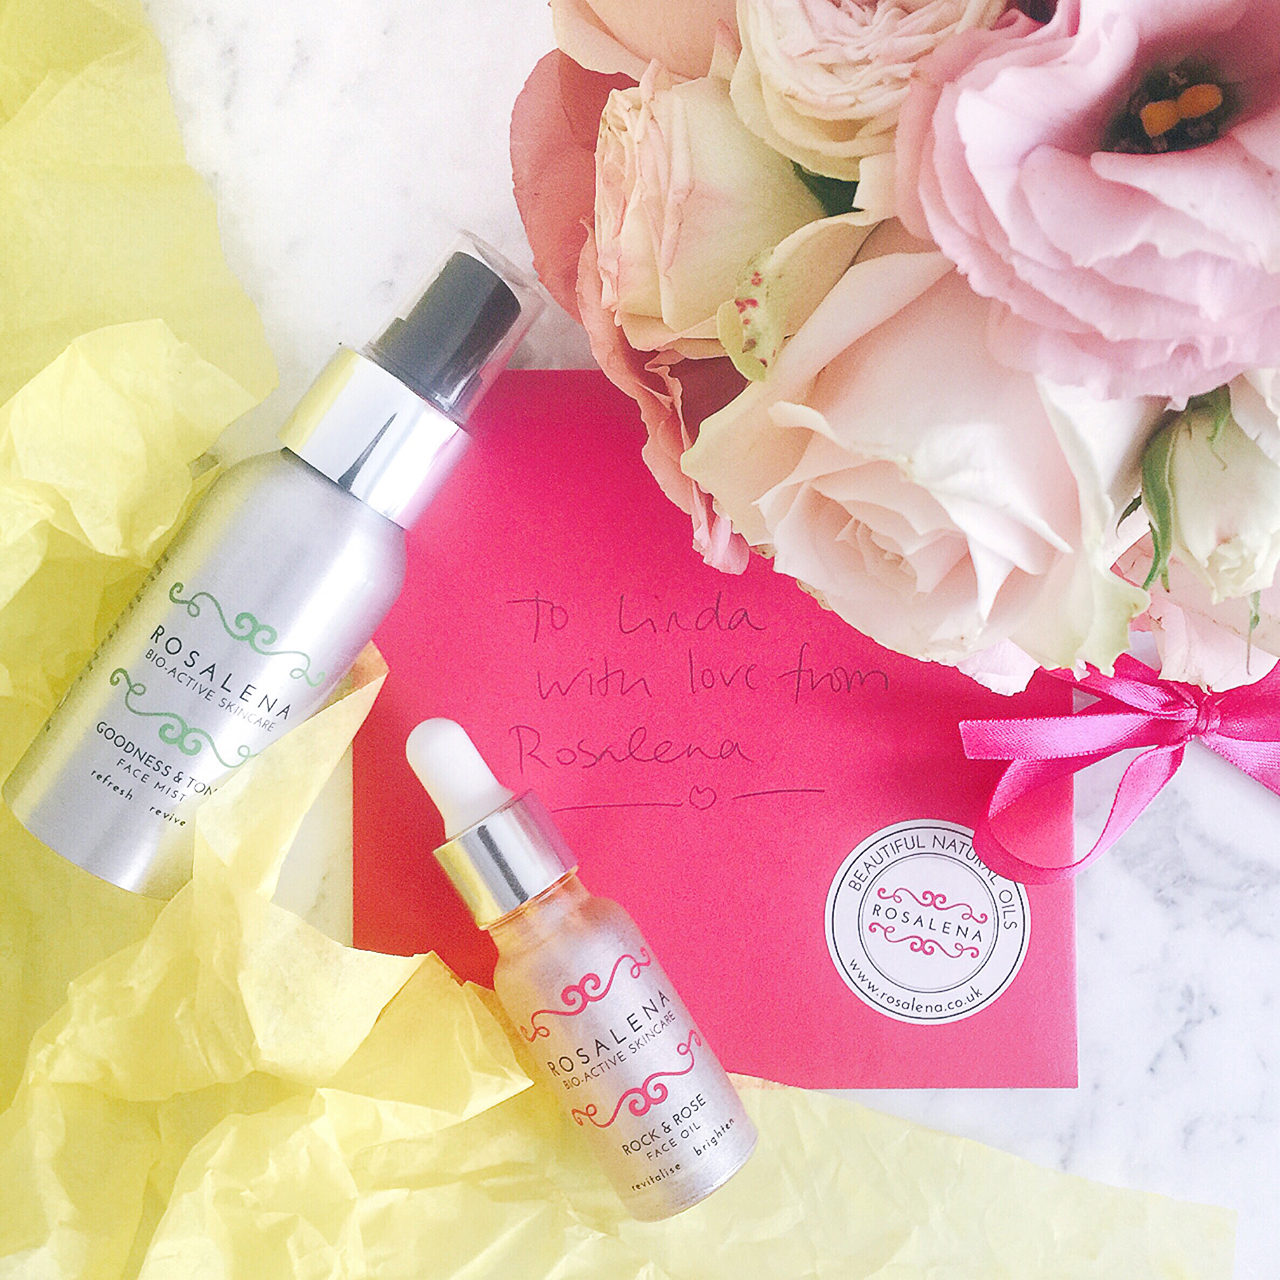 Rosalena Rock & Rose face oil and Goodness & Tonic Face mist